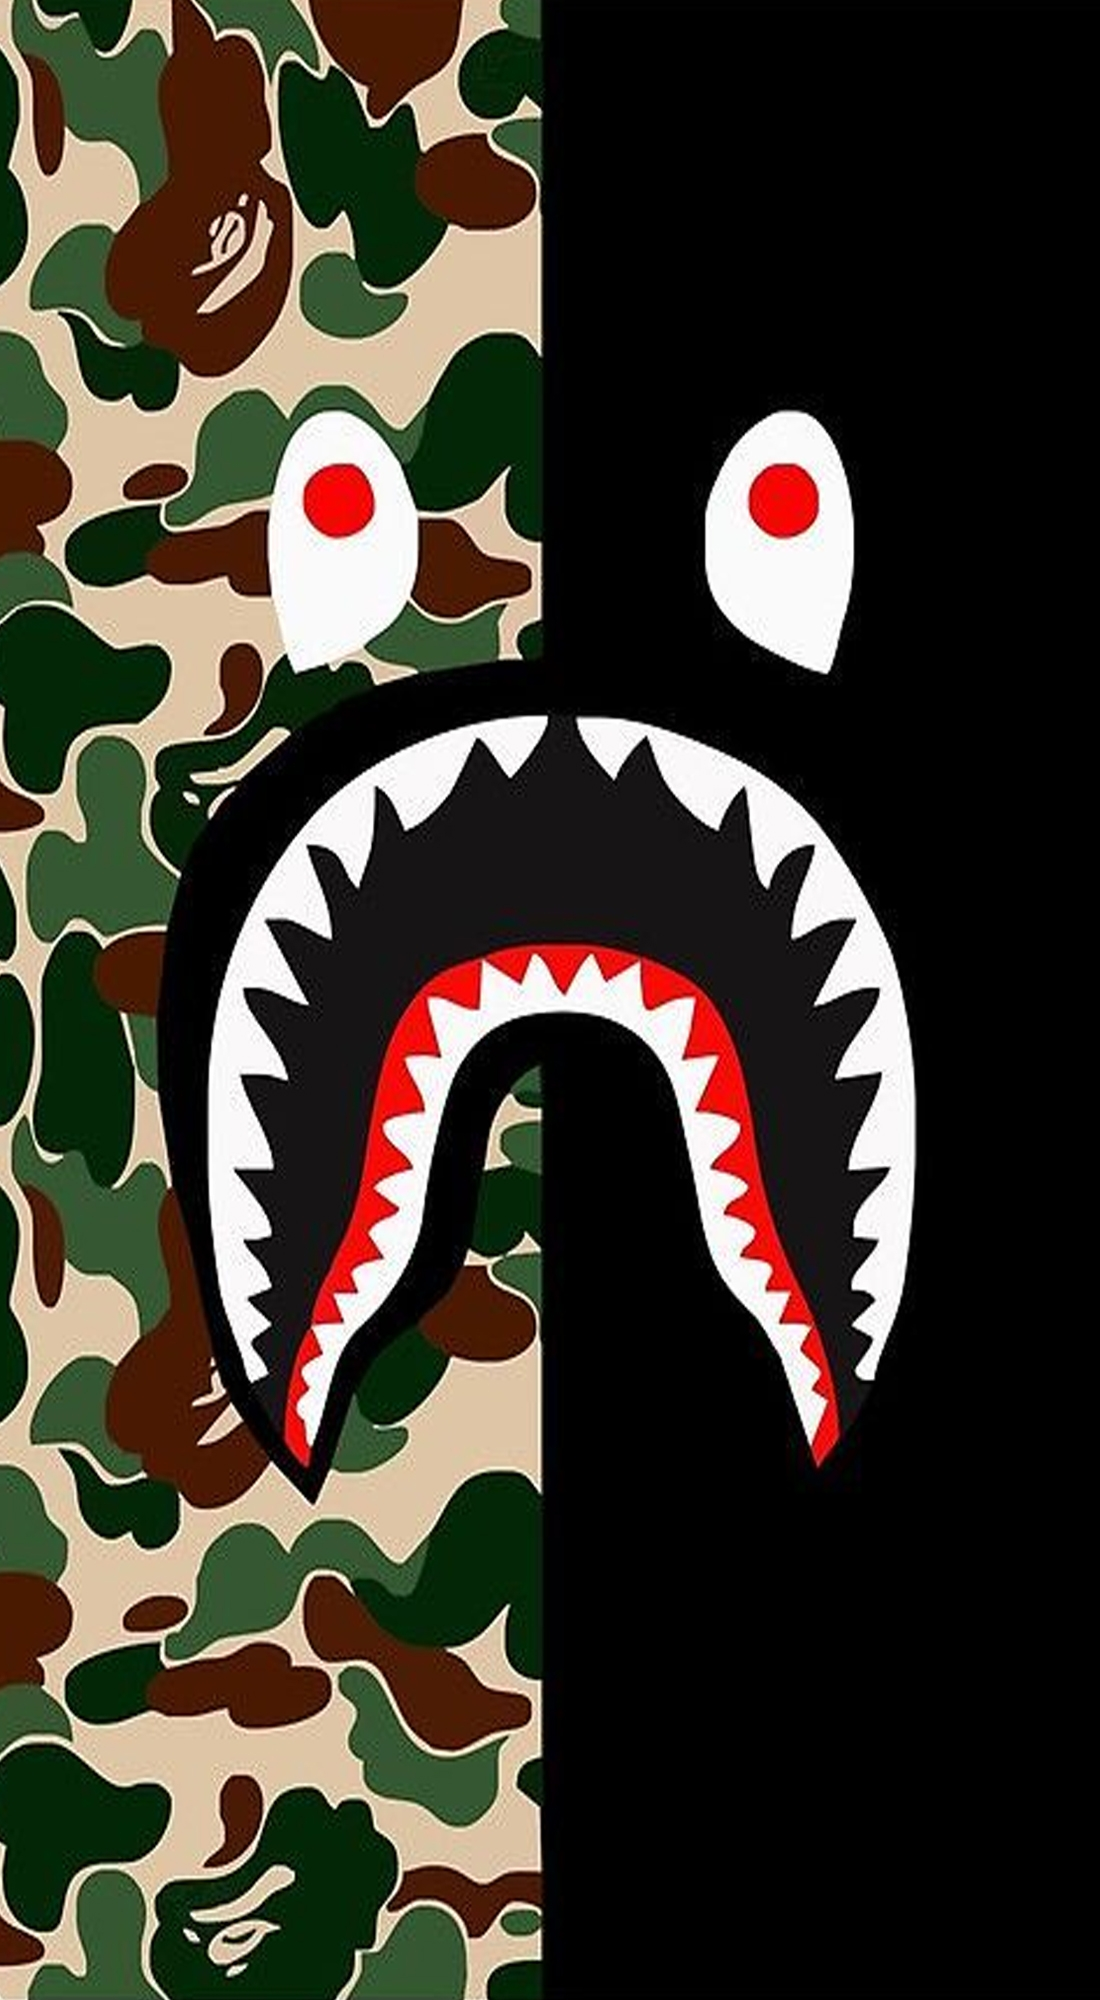 Funda Shark Bape Camo Military Bicolor para